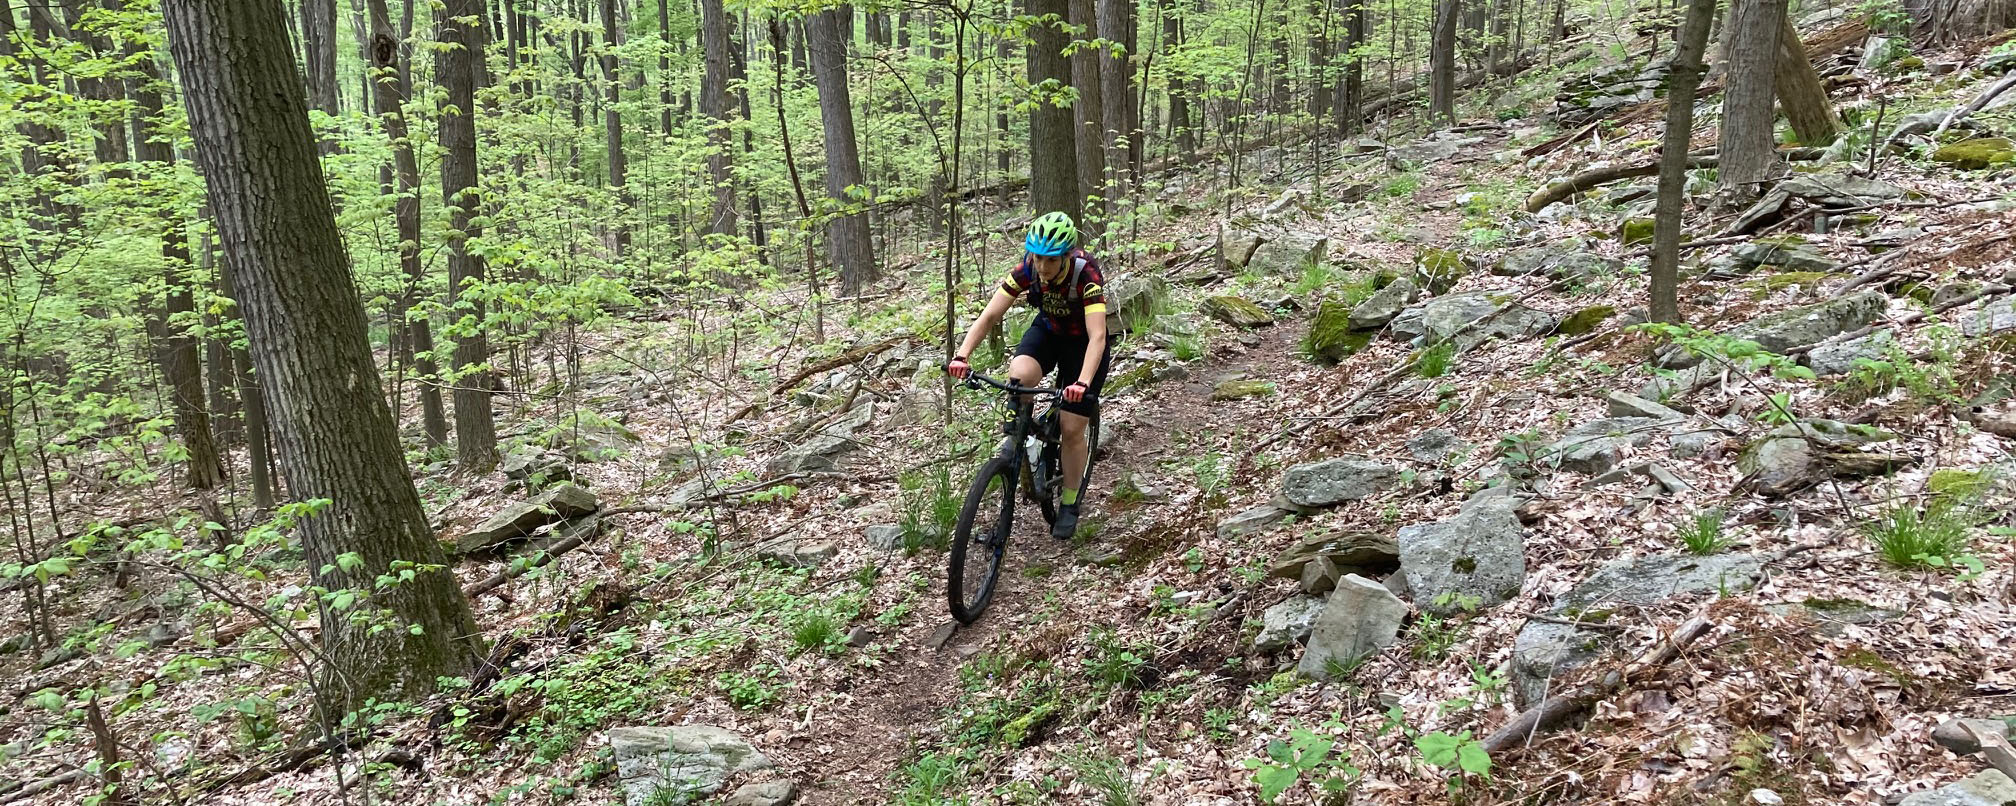 A woman rides a mountain bike through the woods at Blue Knob State Park